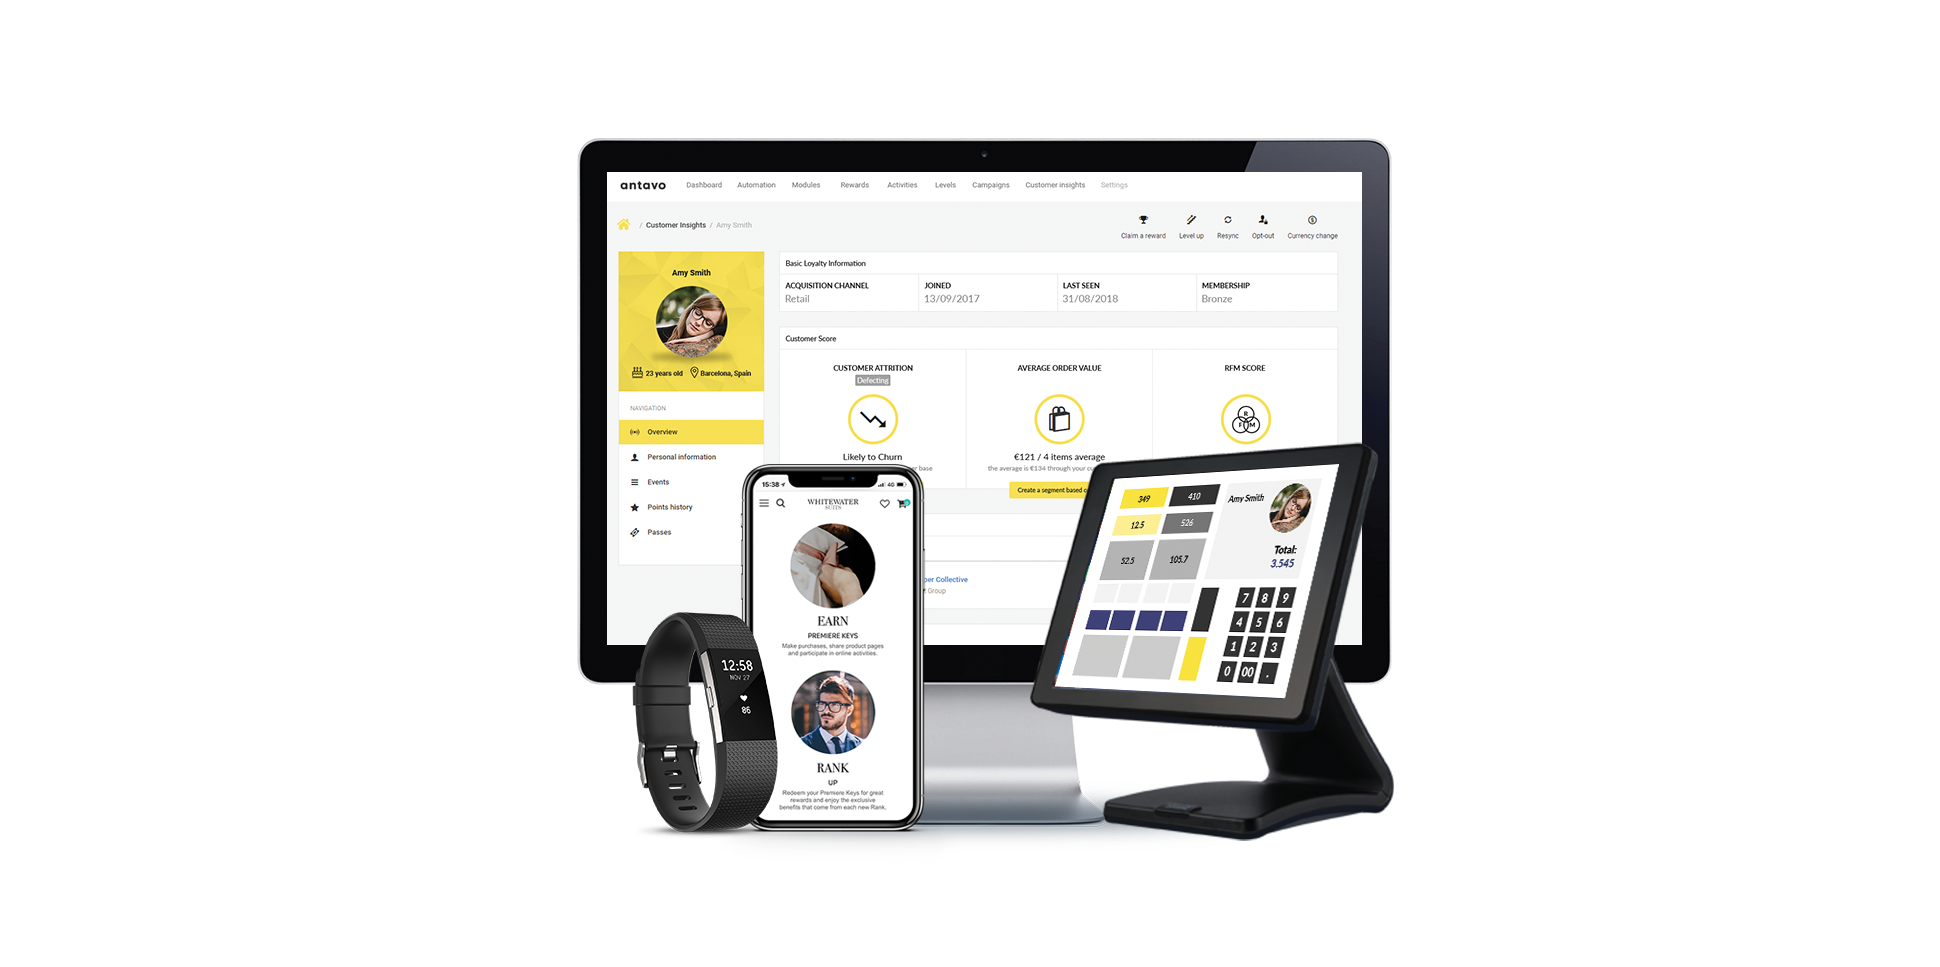 Loyalty programs powered by Antavo are able to incentivise customer behaviour through all channels - online, mobile, in-store and even in the daily life of customers - when they are working out, talking with friends or wearing your products.